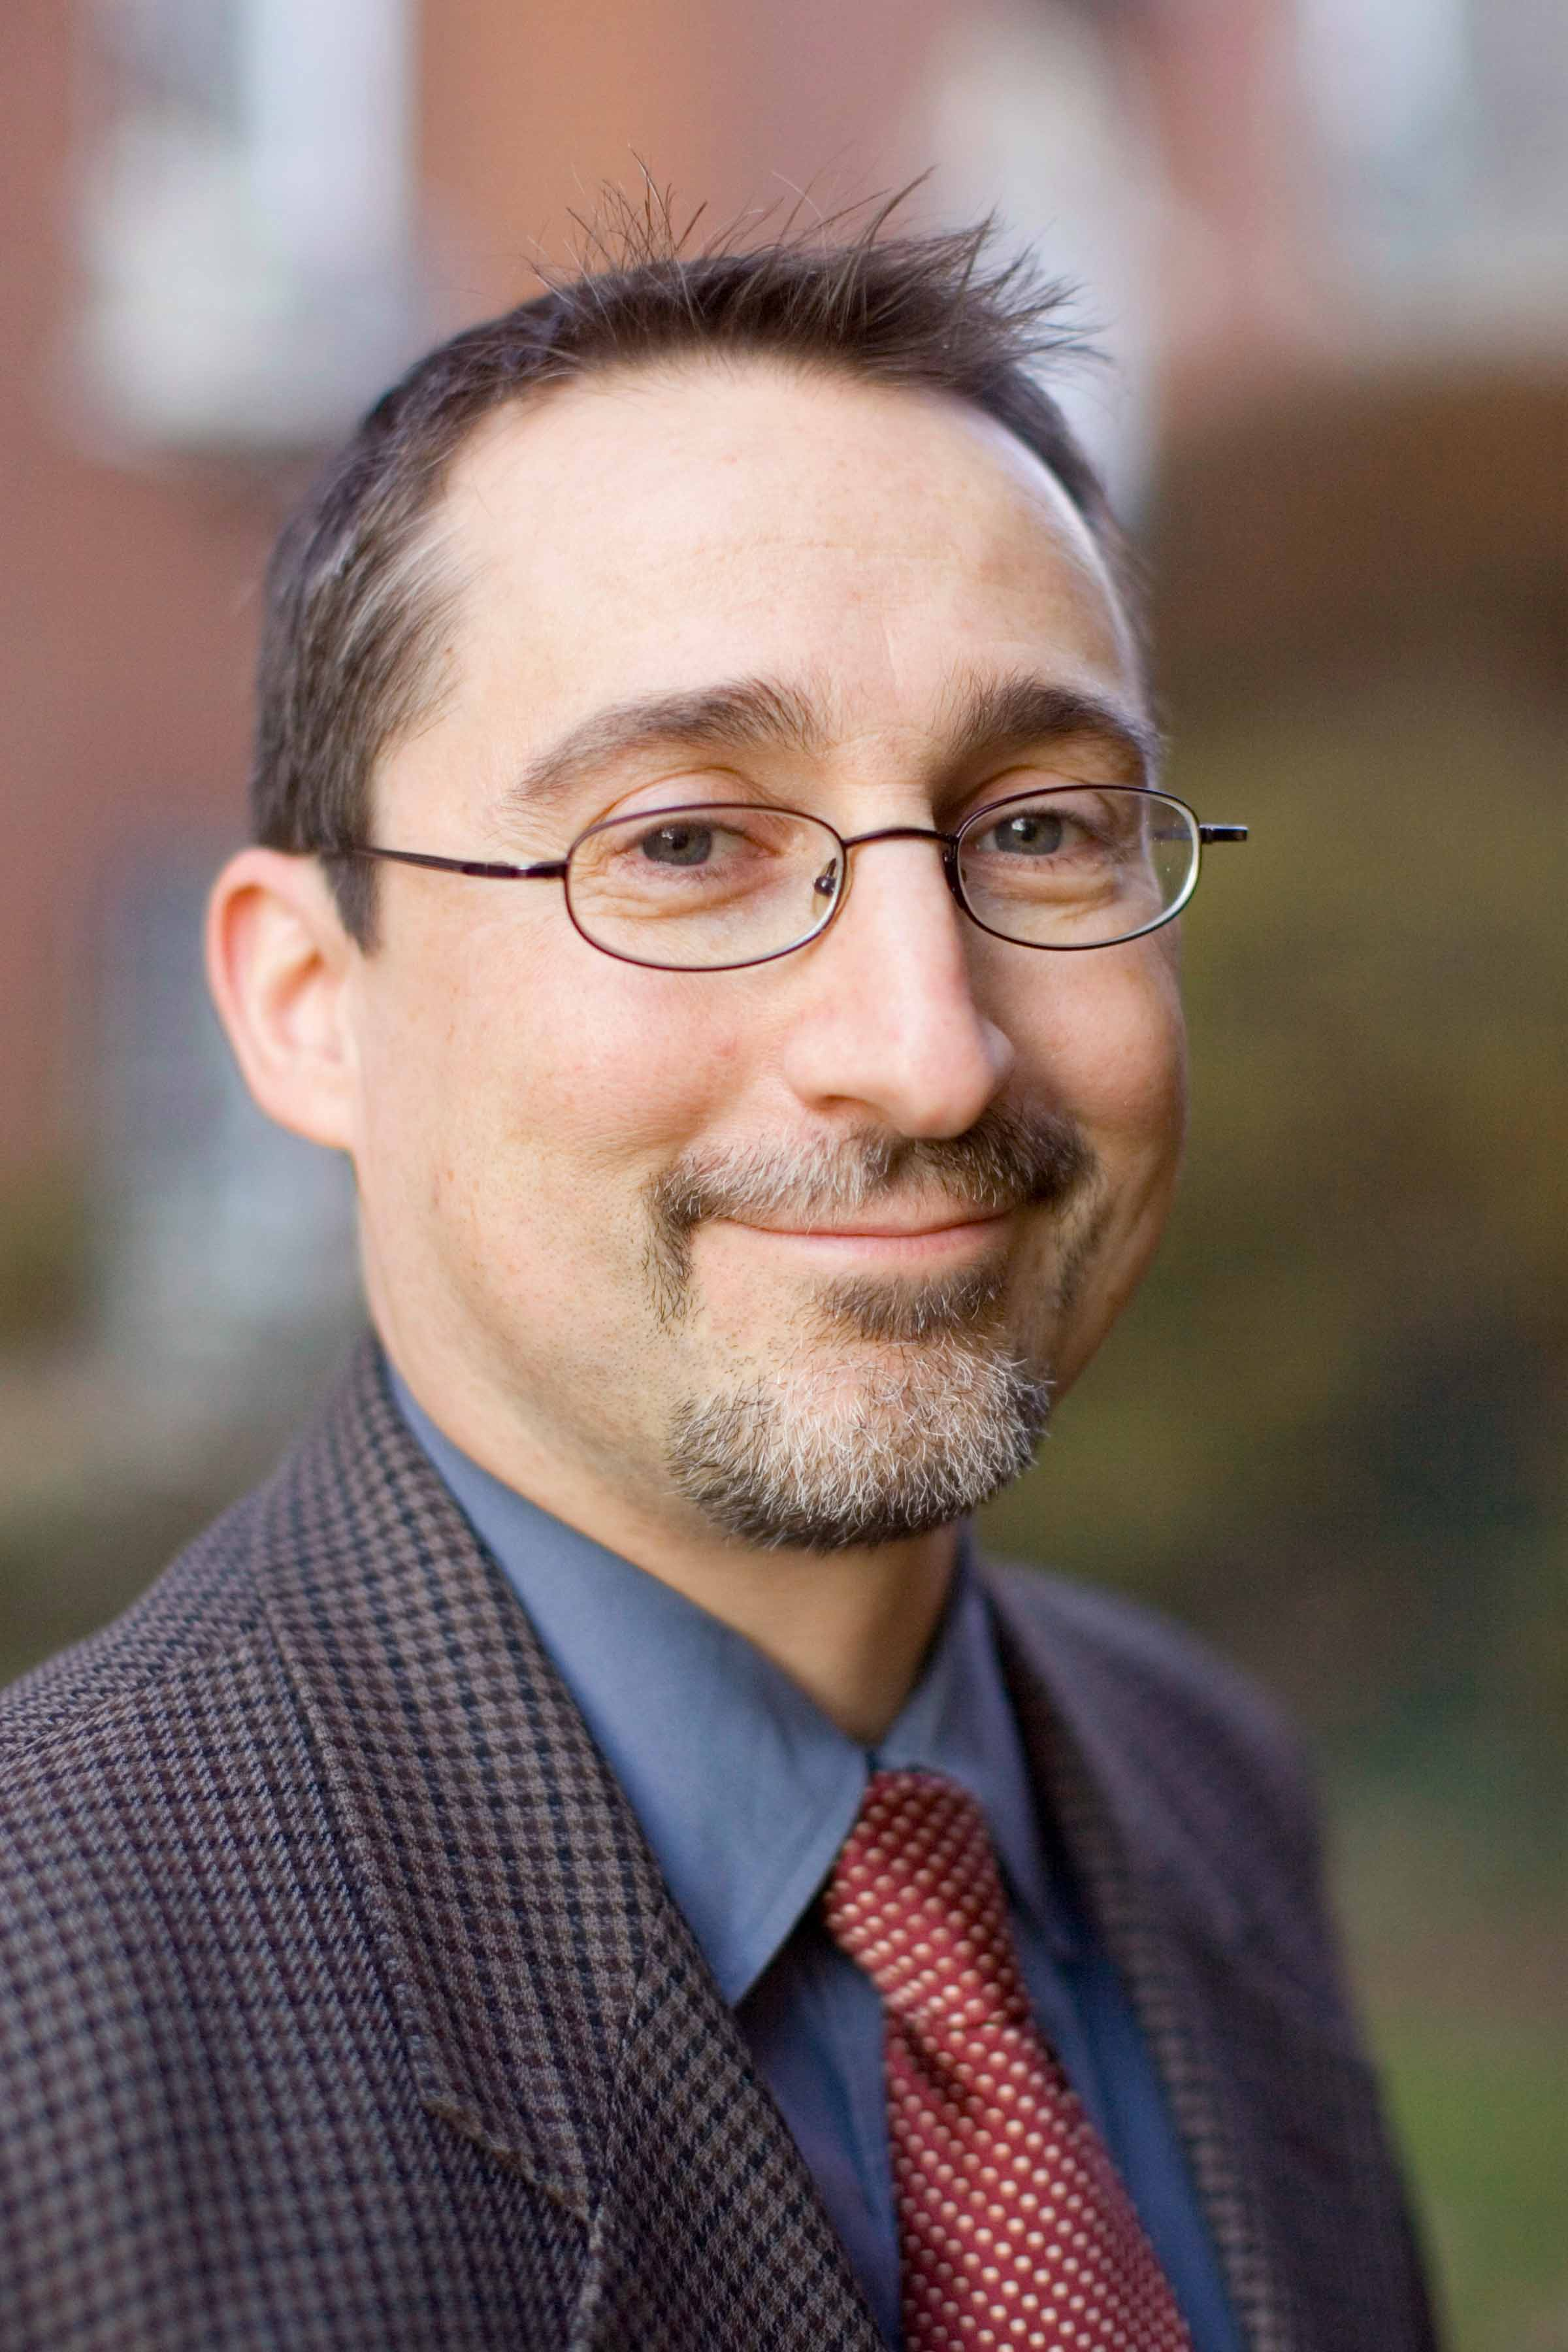 Paul Freedman is an associate professor of politics and associate department chair of the Woodrow Wilson Department of Politics. He specializes in public opinion and media and politics.